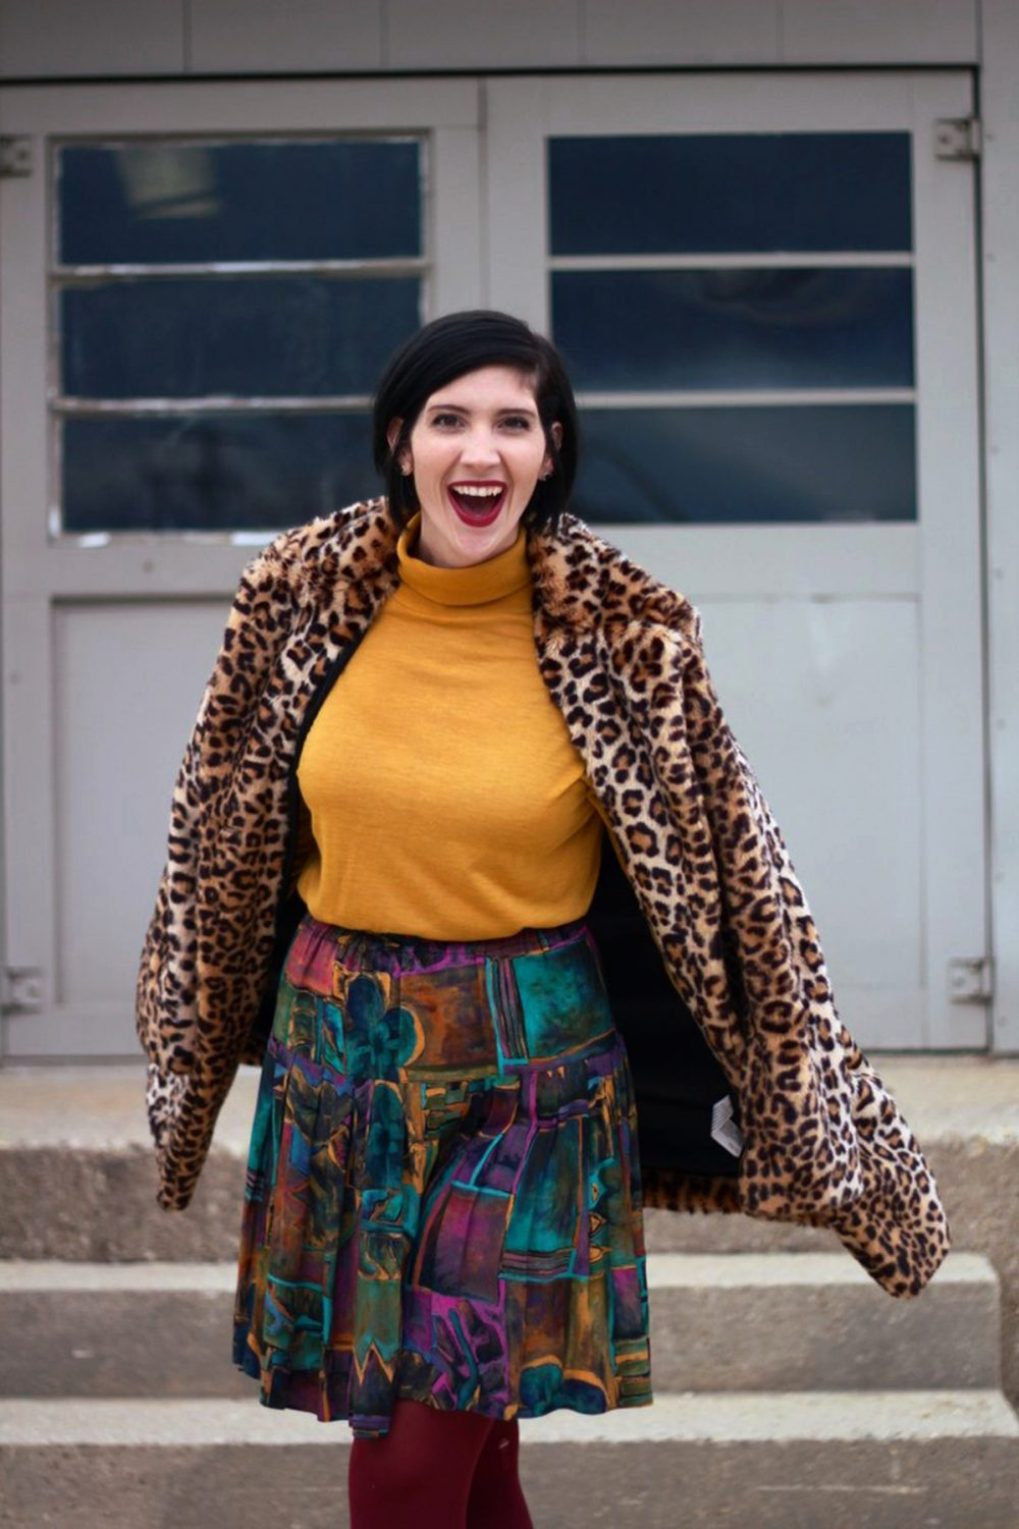 Outfit: Leopard print coat, mustard yellow turtleneck, multi colored skirt